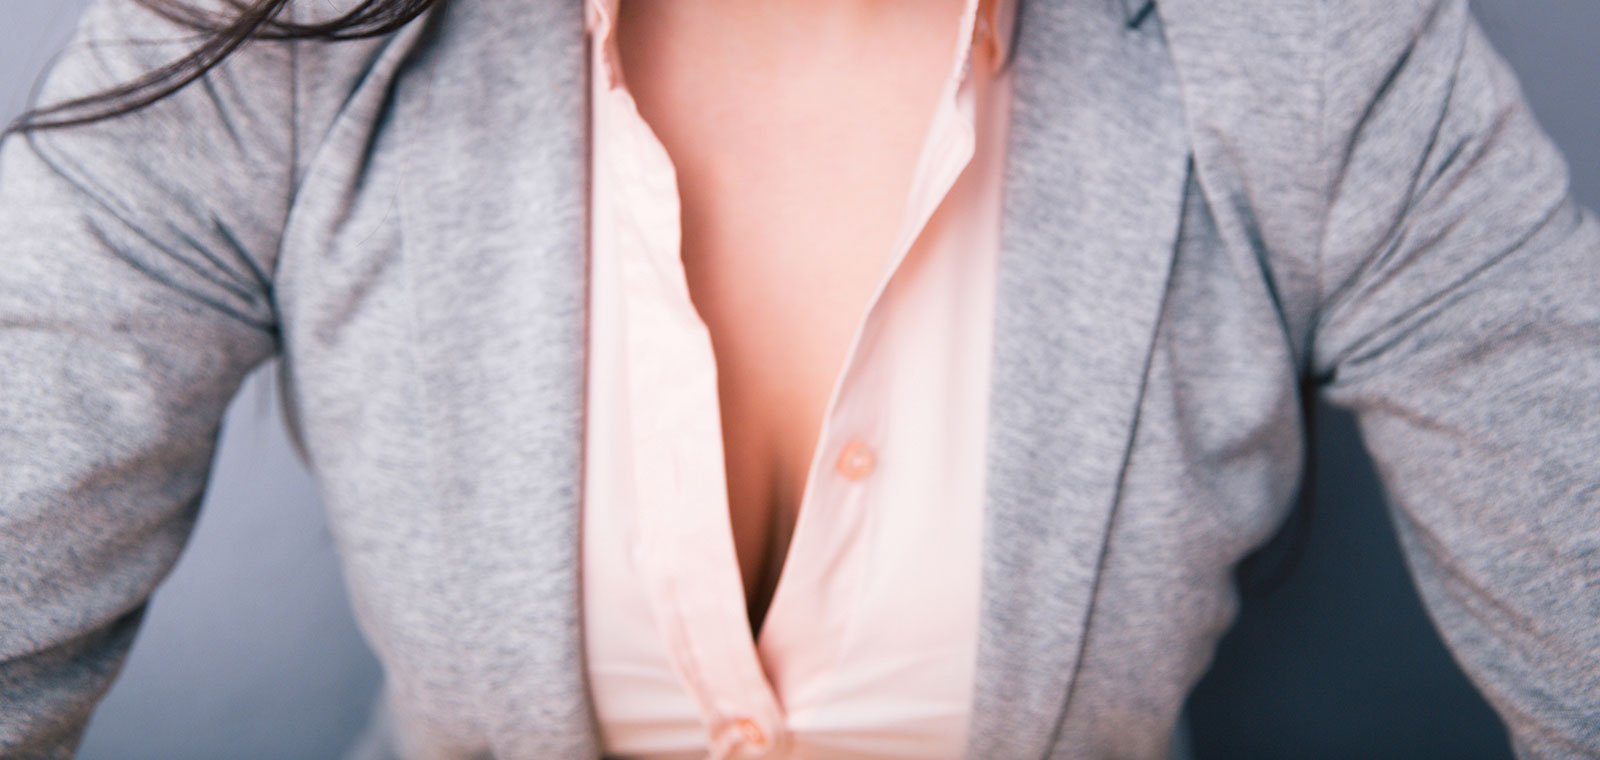 BREAST SURGICAL PROCEDURES